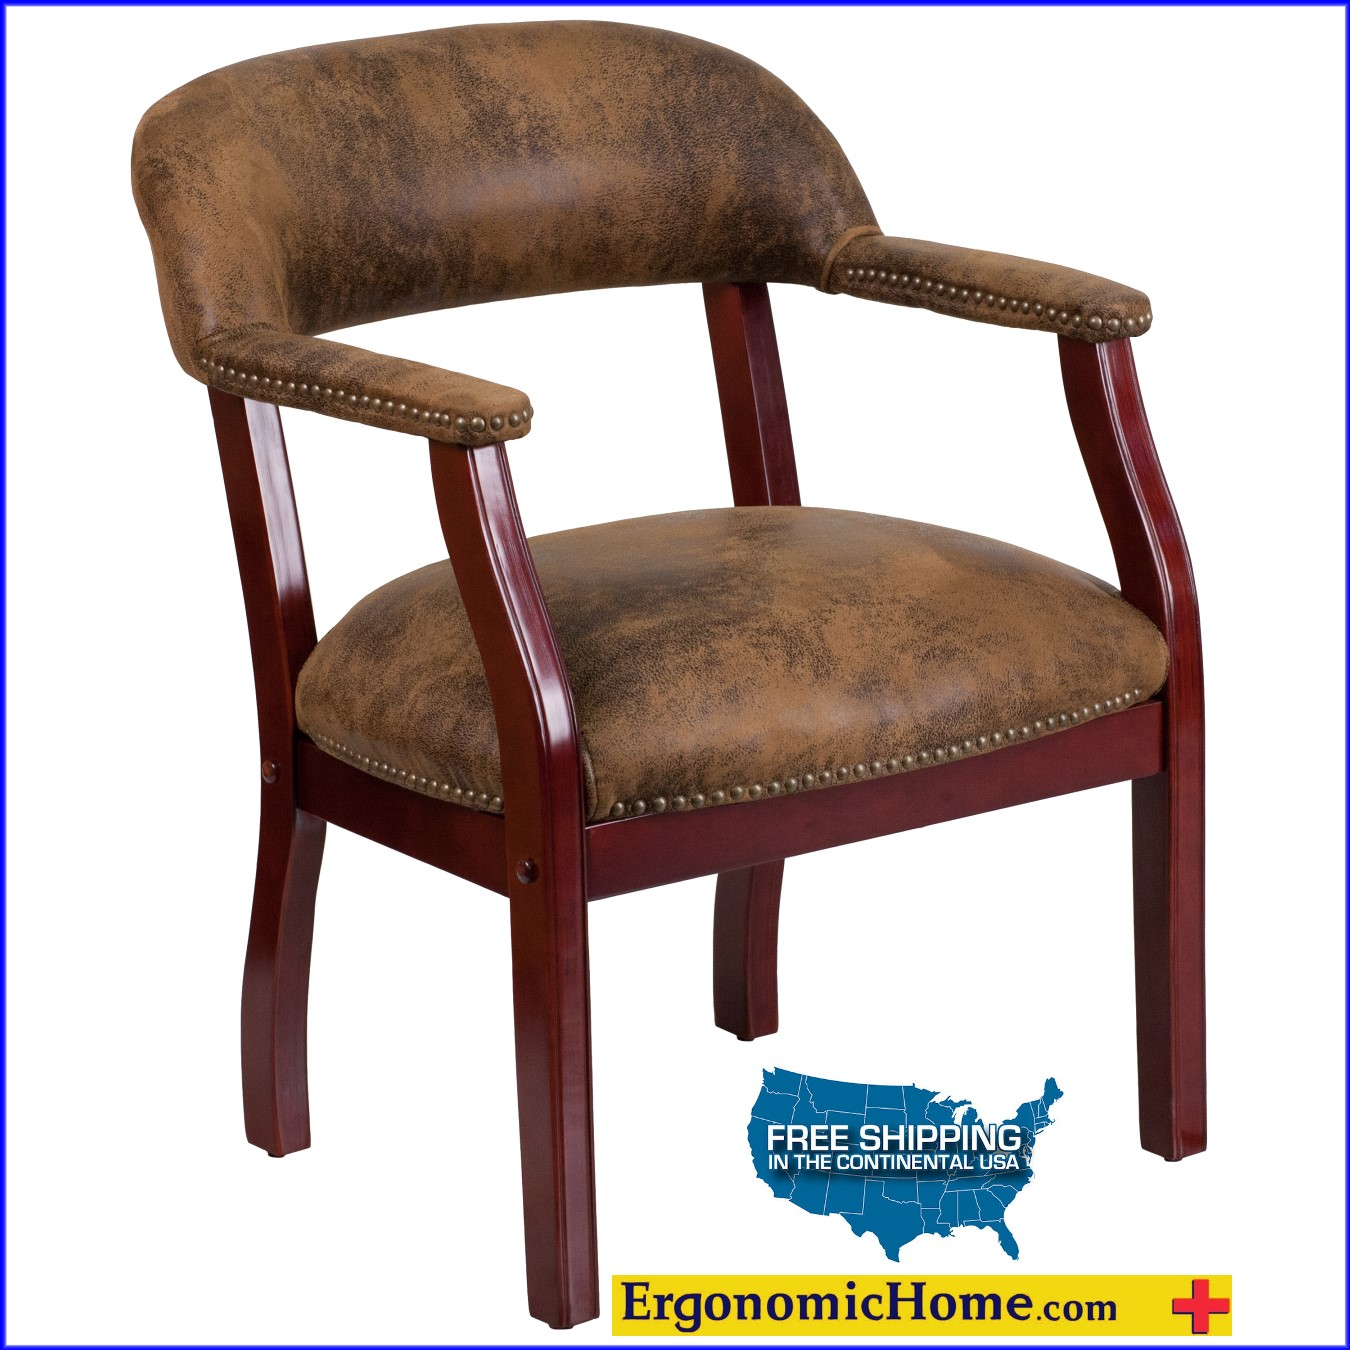 Ergonomic Home Bomber Jacket Brown Luxurious Conference Chair / Guest Chair EH-B-Z105-BRN-GG   VIDEO BELOW.